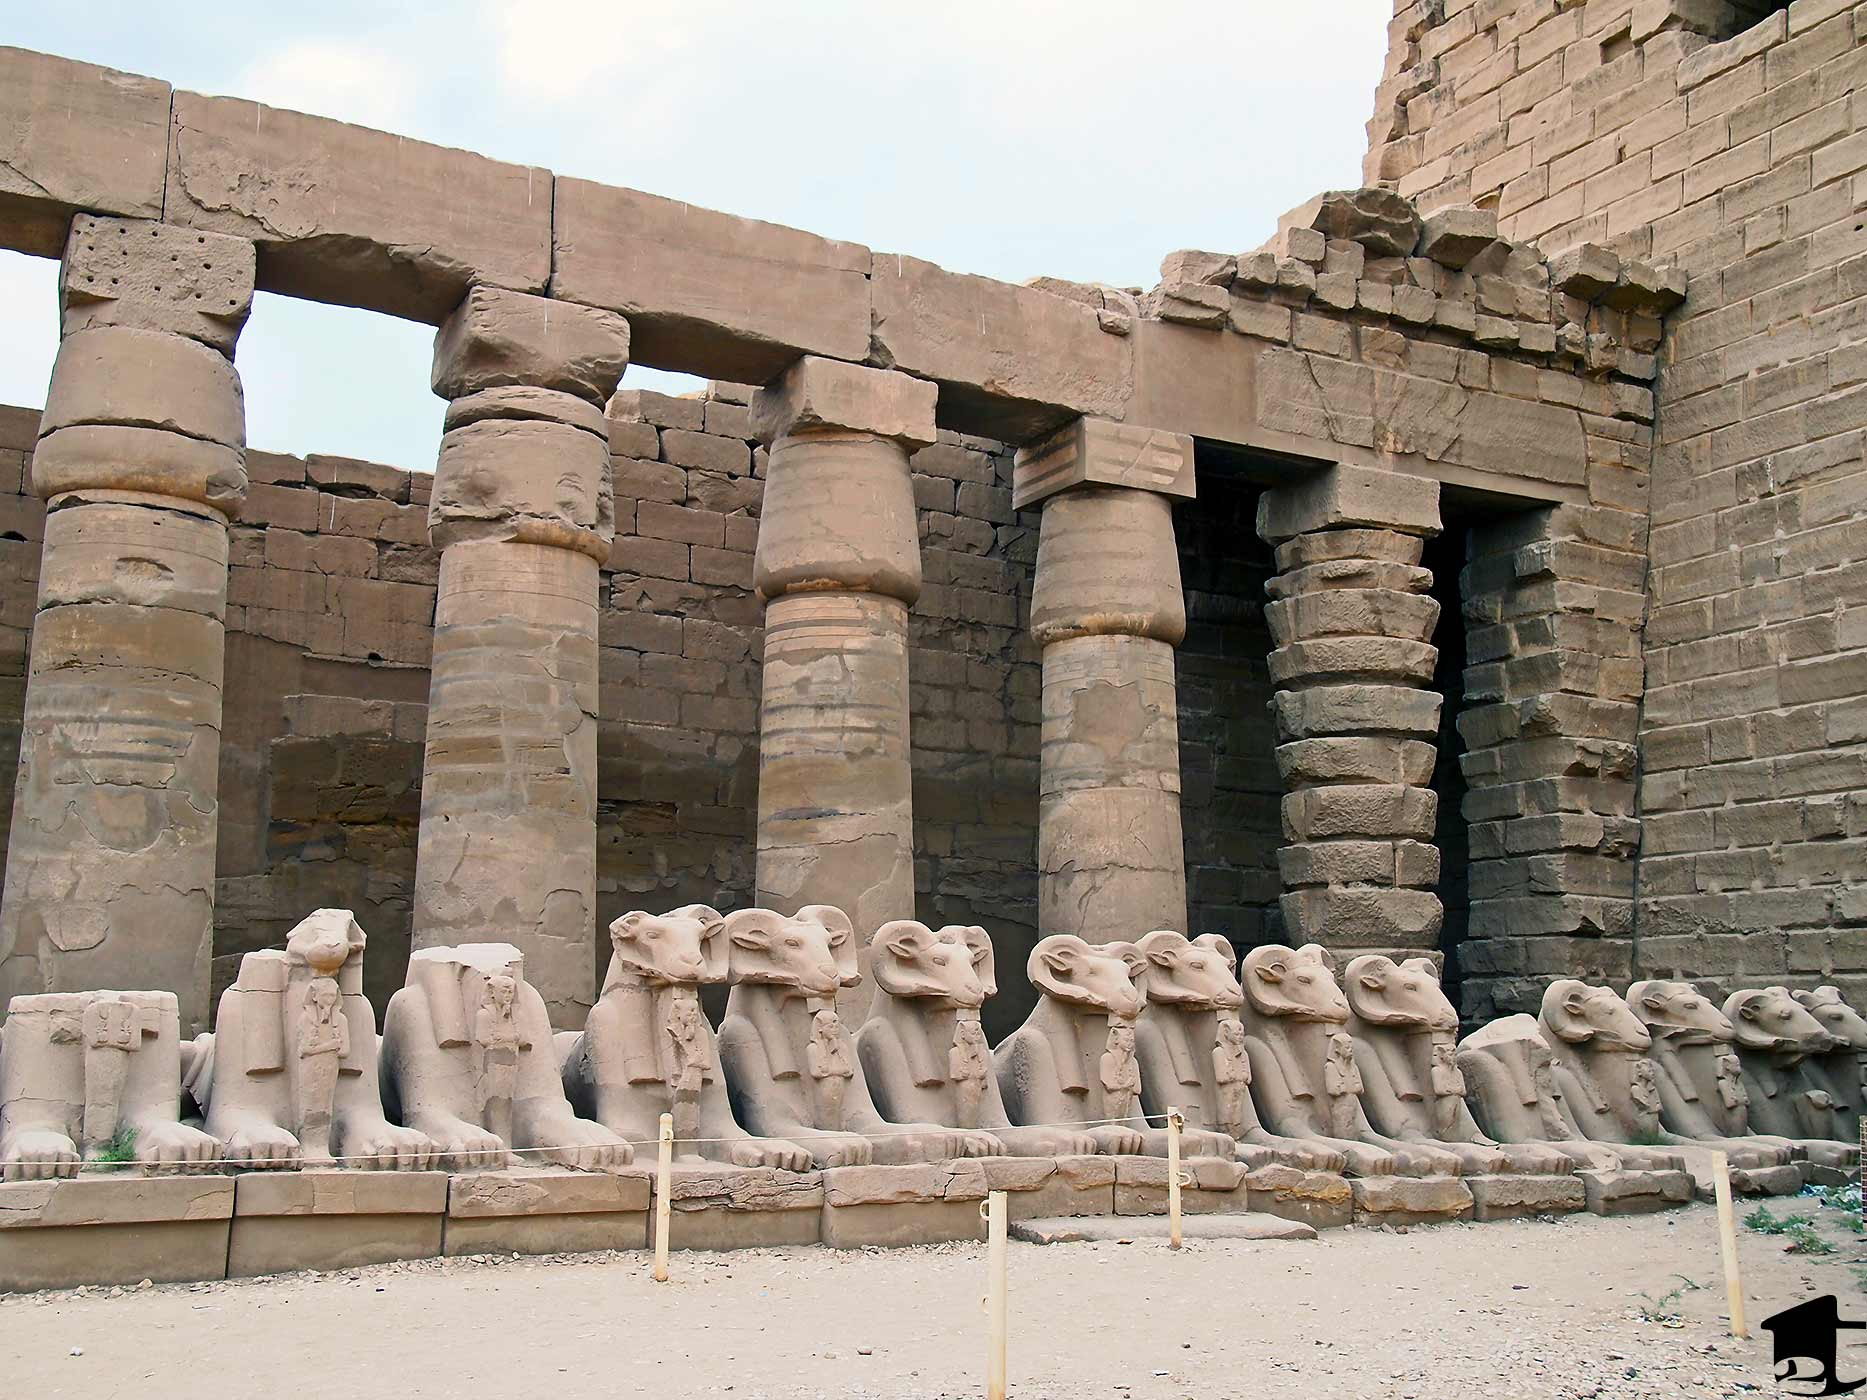 Pillars and statues at Karnak